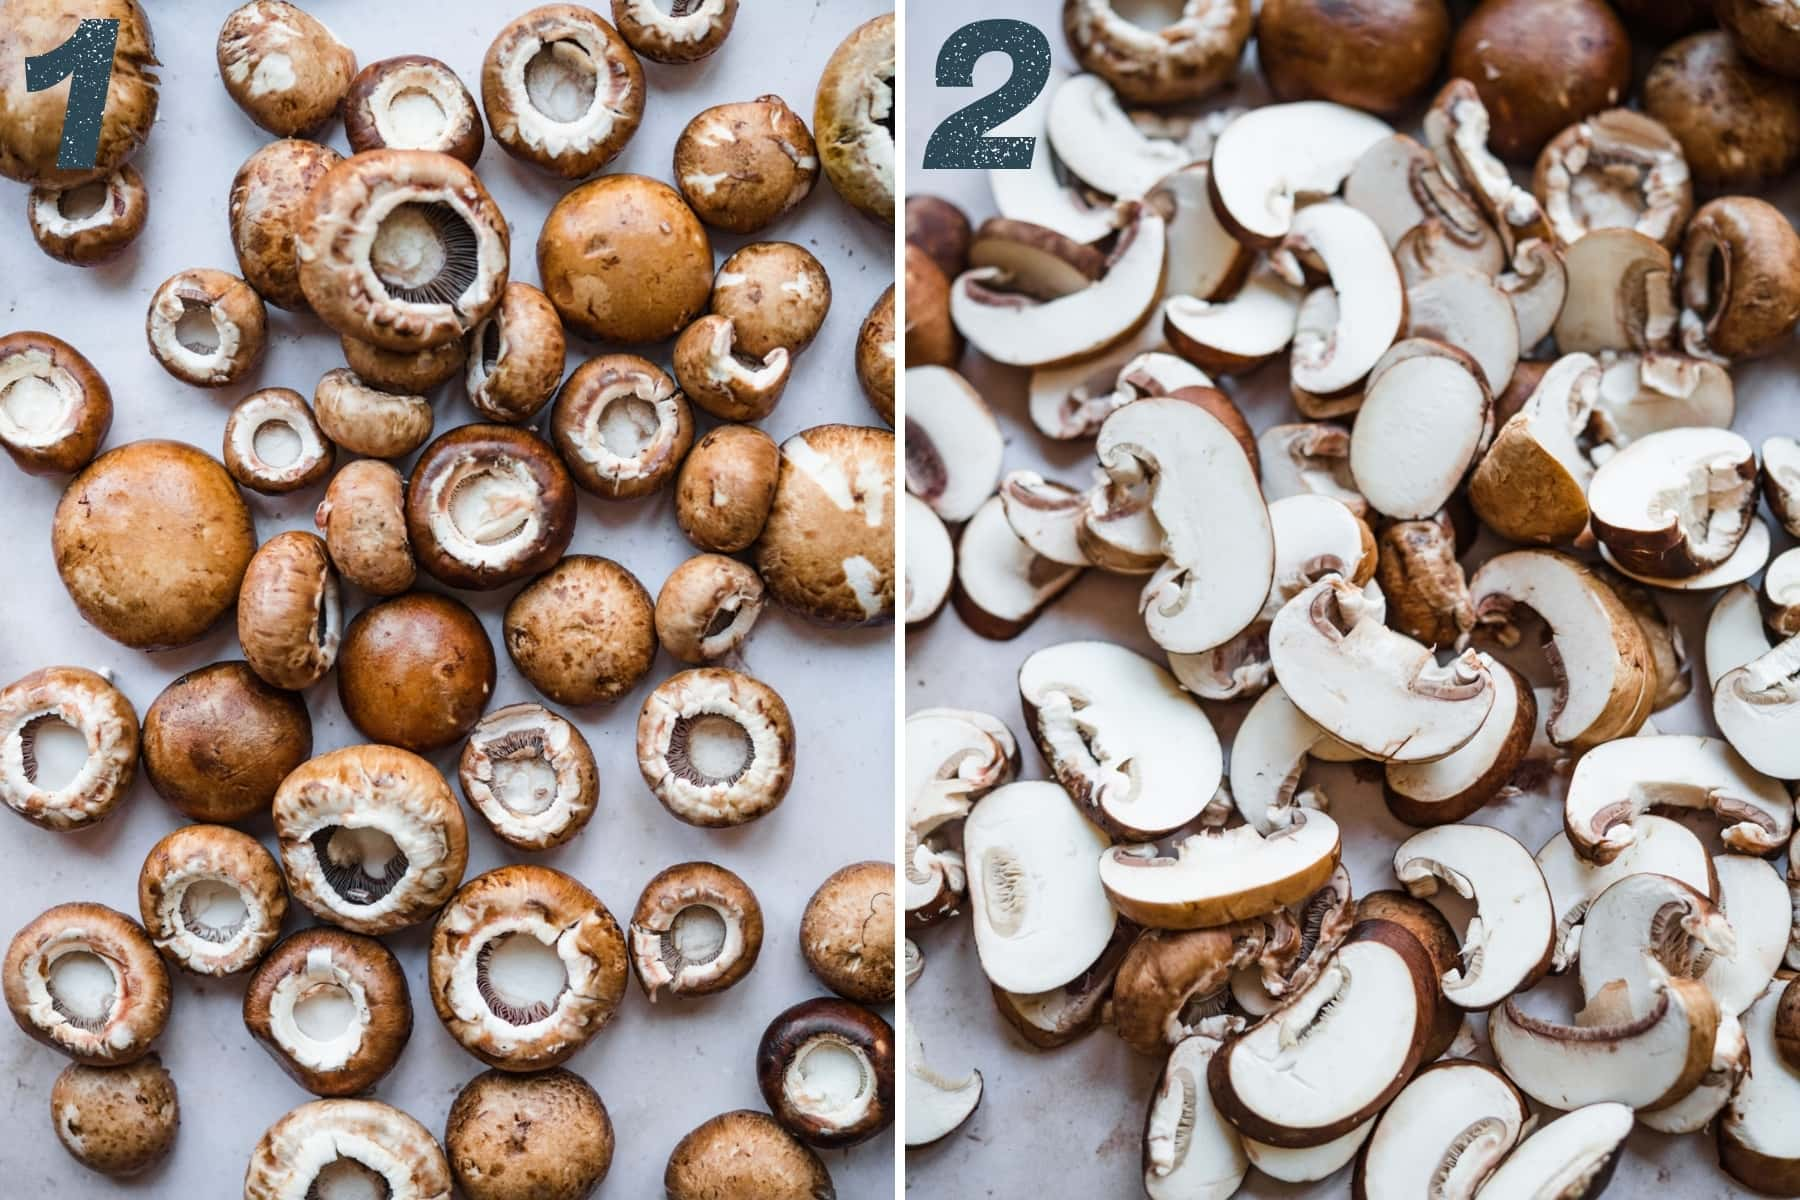 Cremini mushrooms before and after slicing.